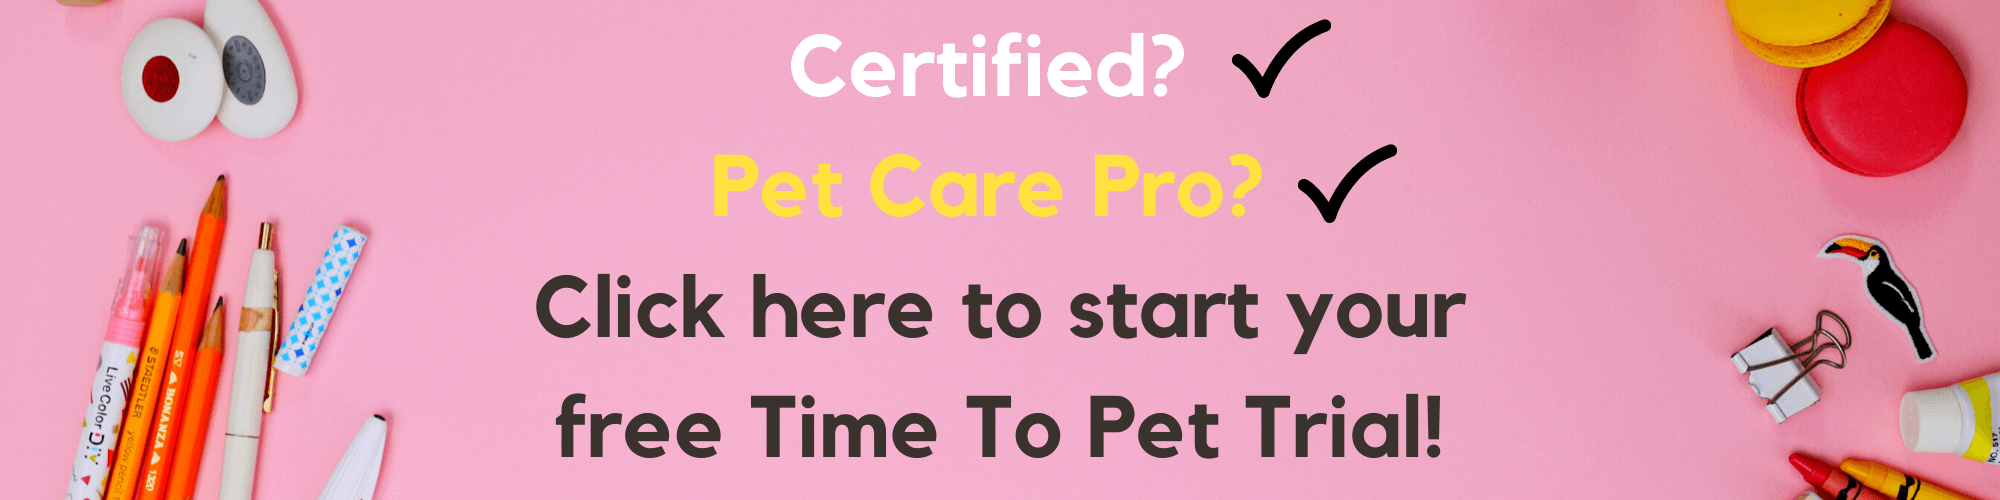 Free-Trial-CTA-pet-sitting-certifications